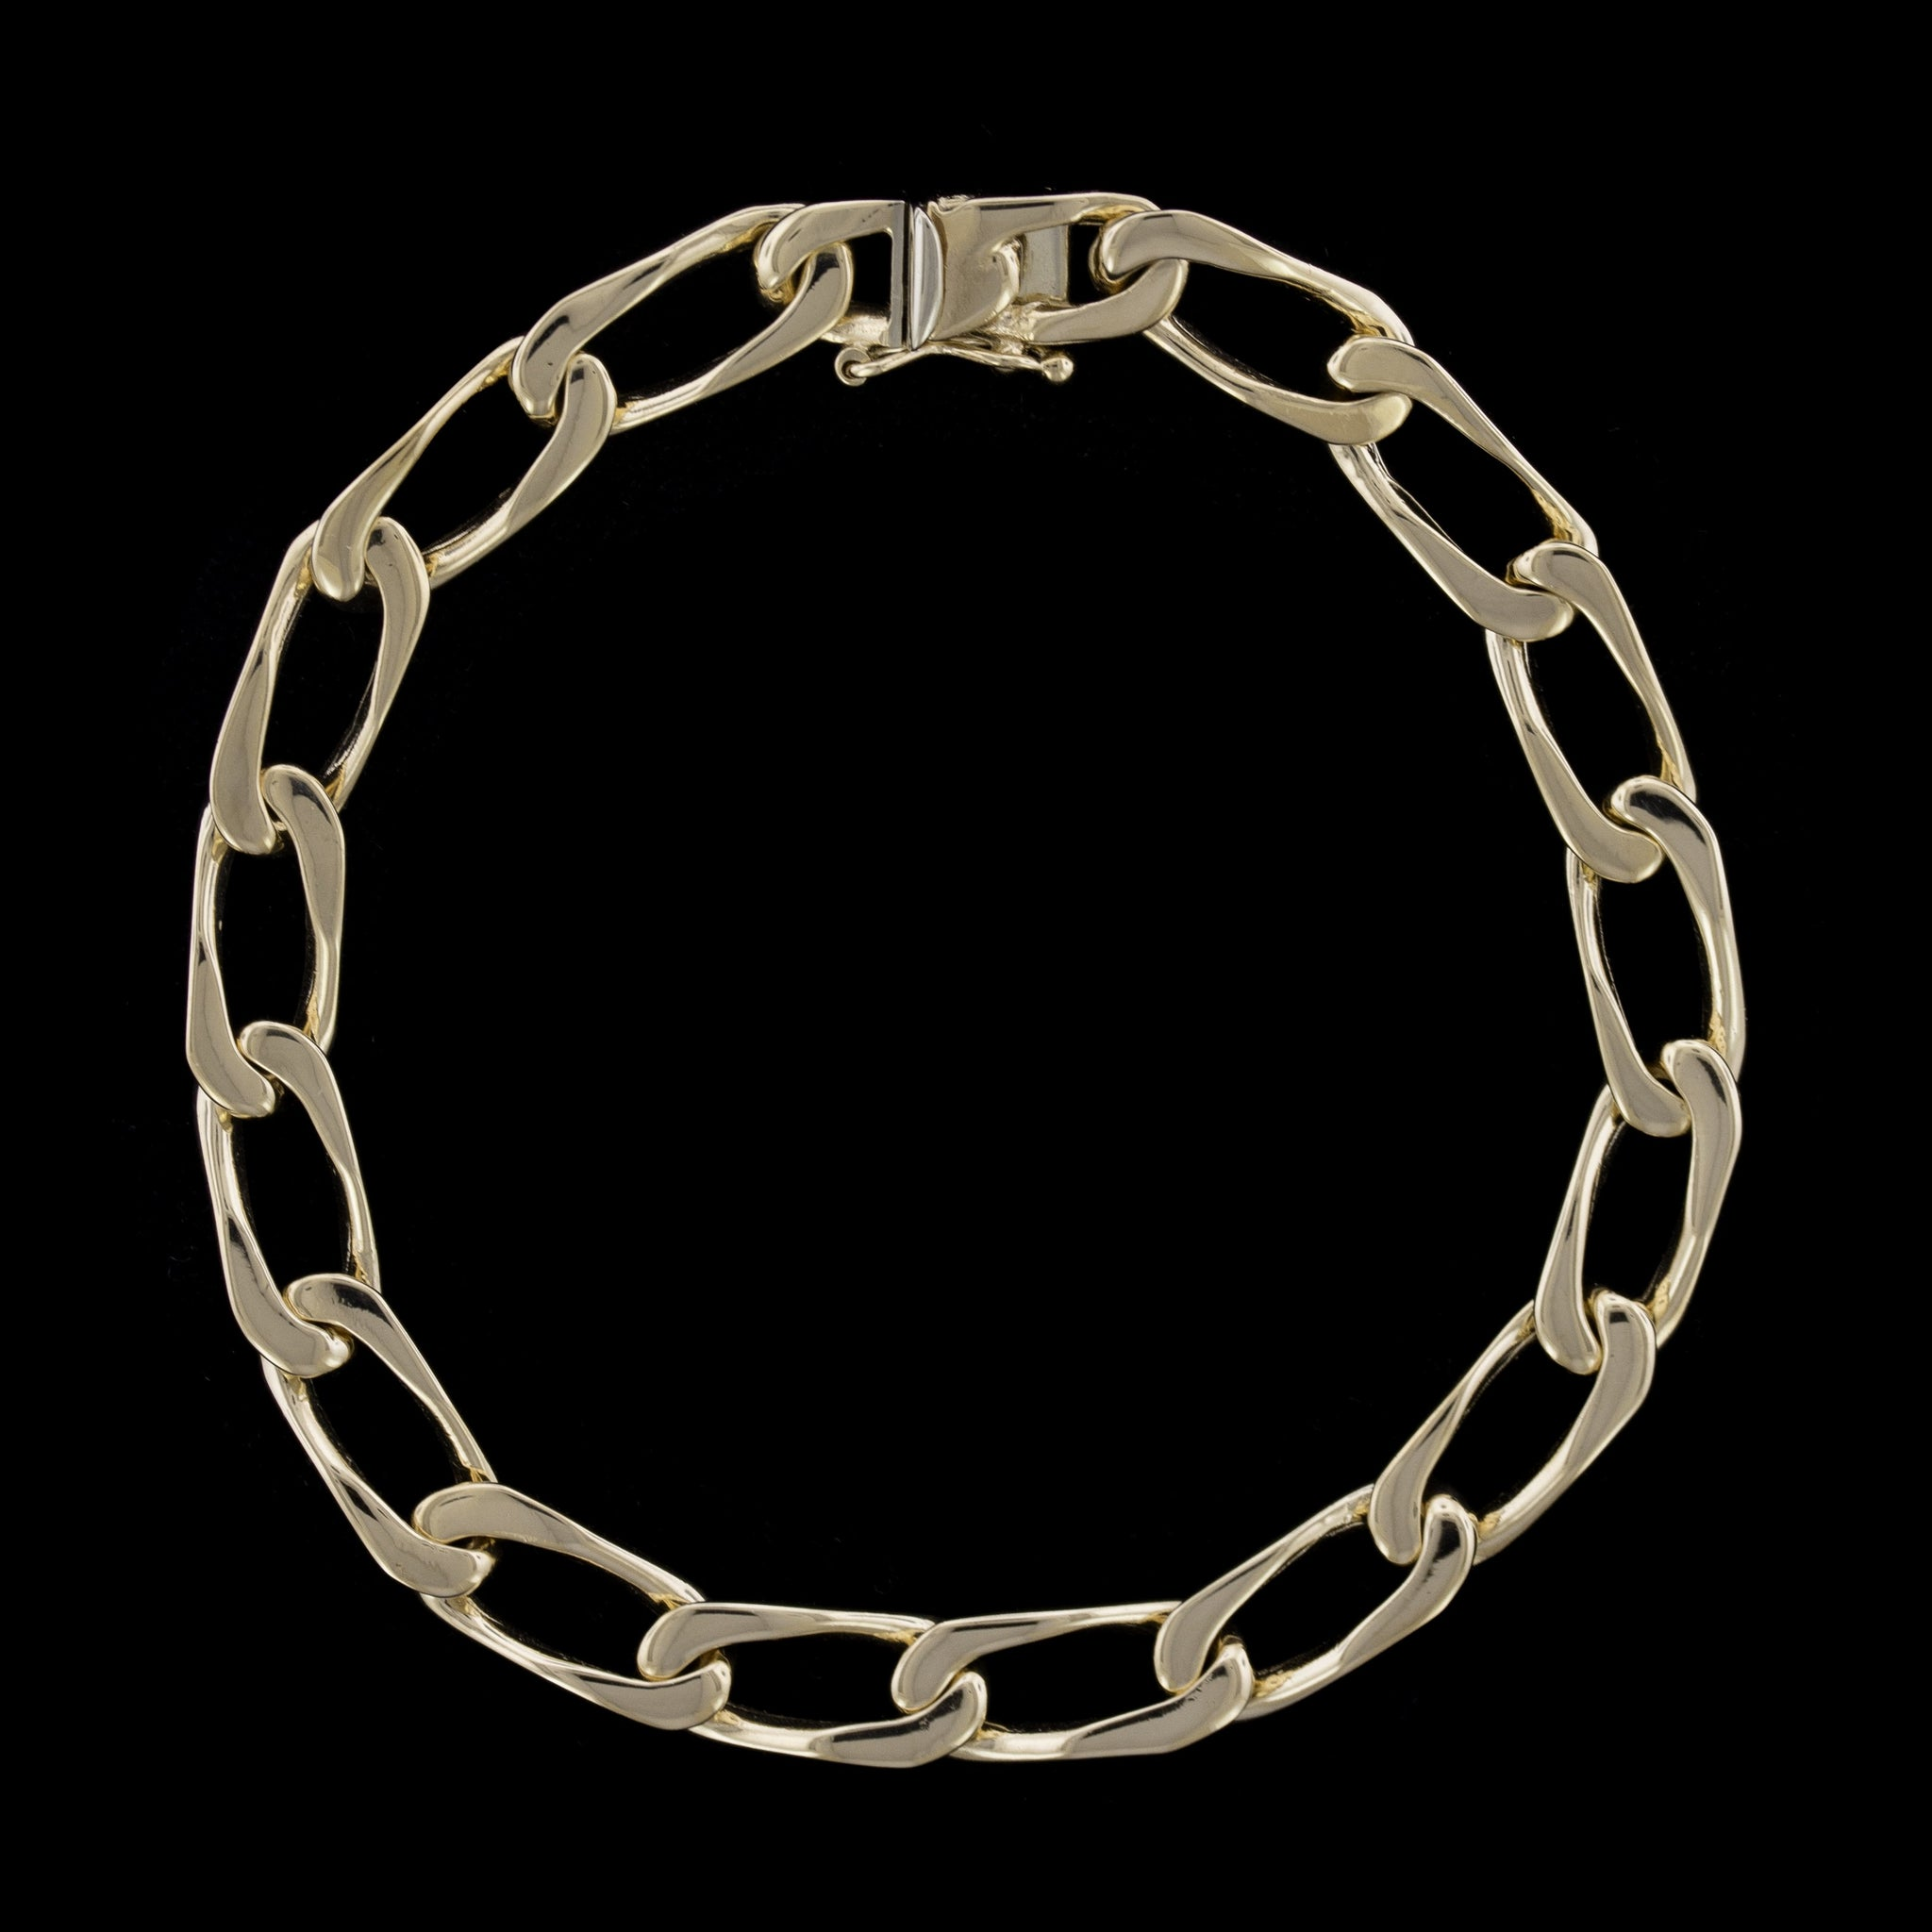 14K Yellow Gold Estate Curb Link Bracelet